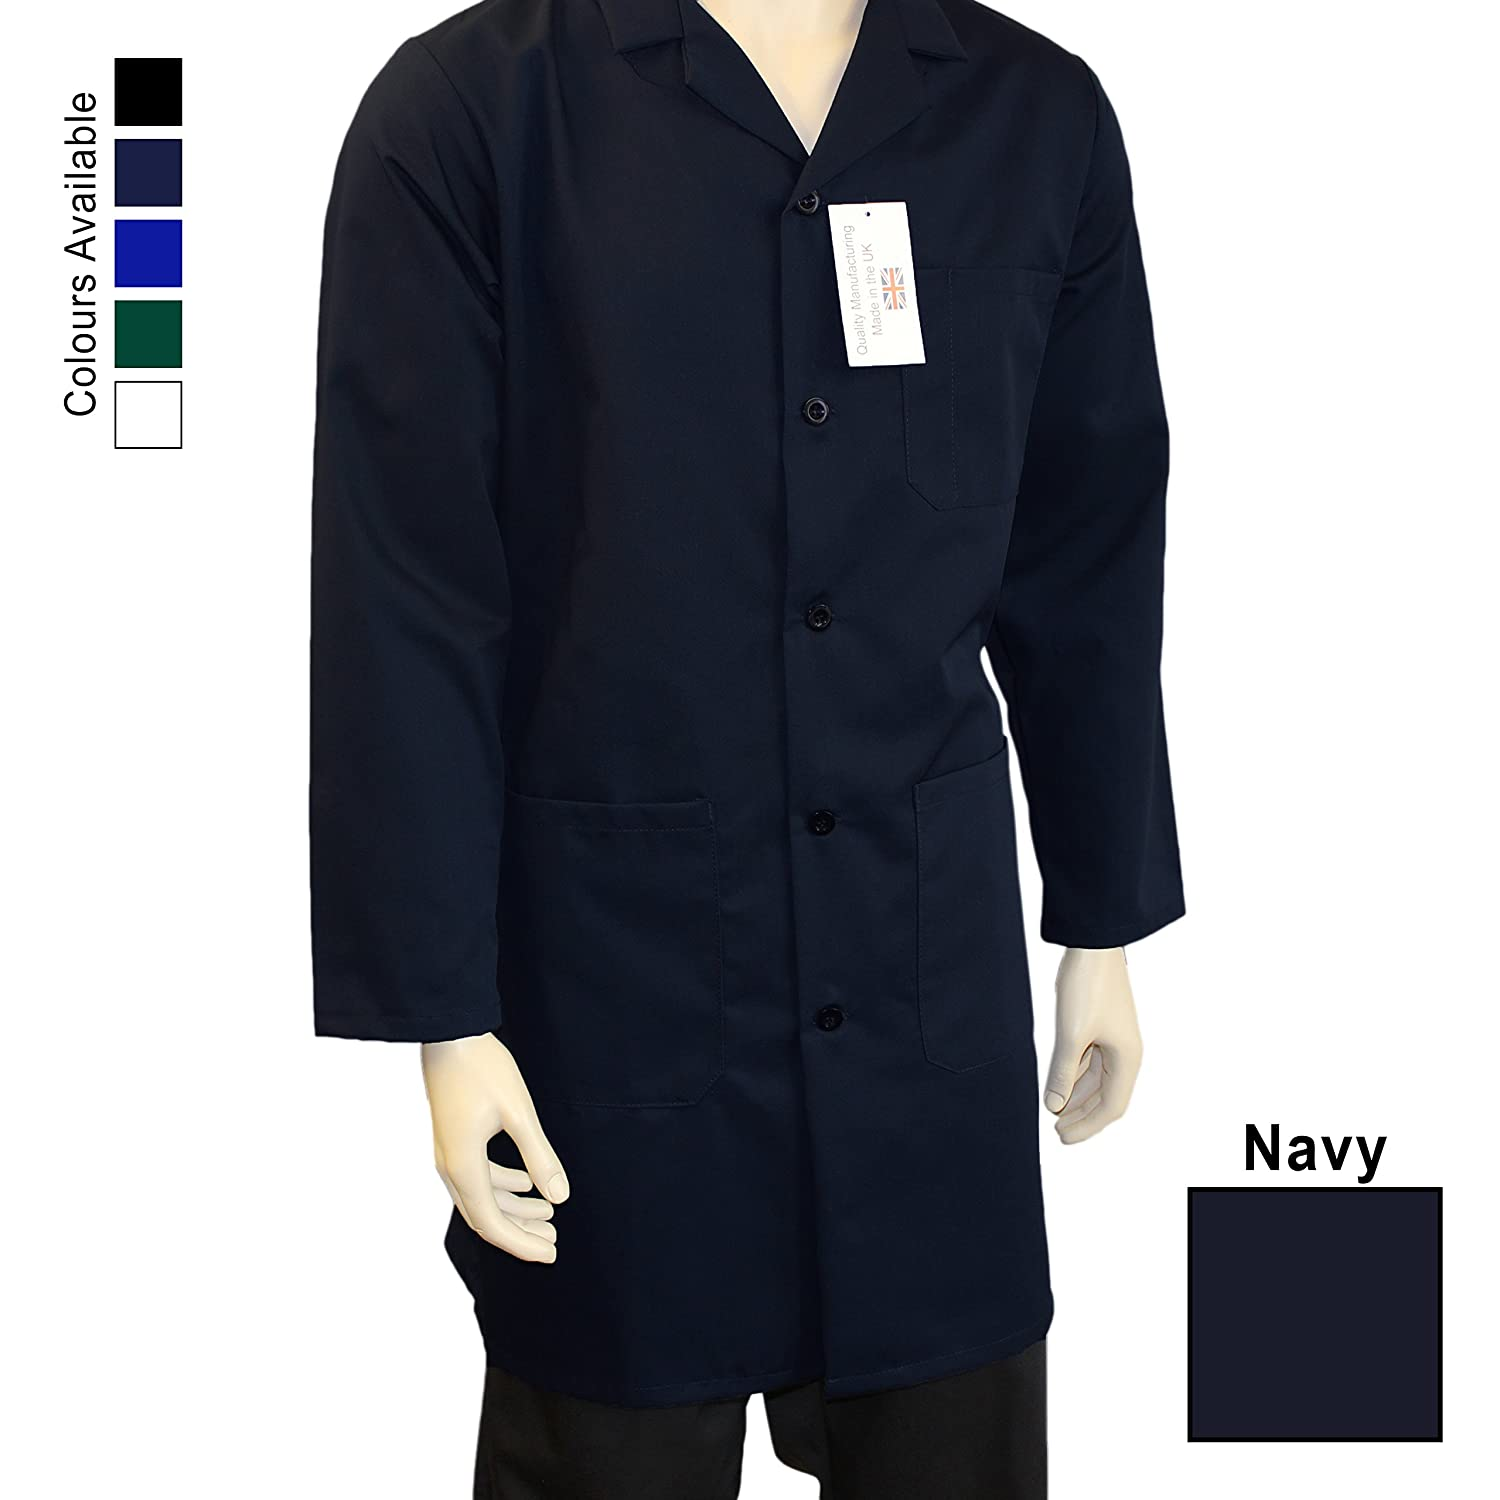 WSC Workwear Warehouse Unisex Coat - Fastened With 5 Buttons, Back Vent For Ease Of Movement